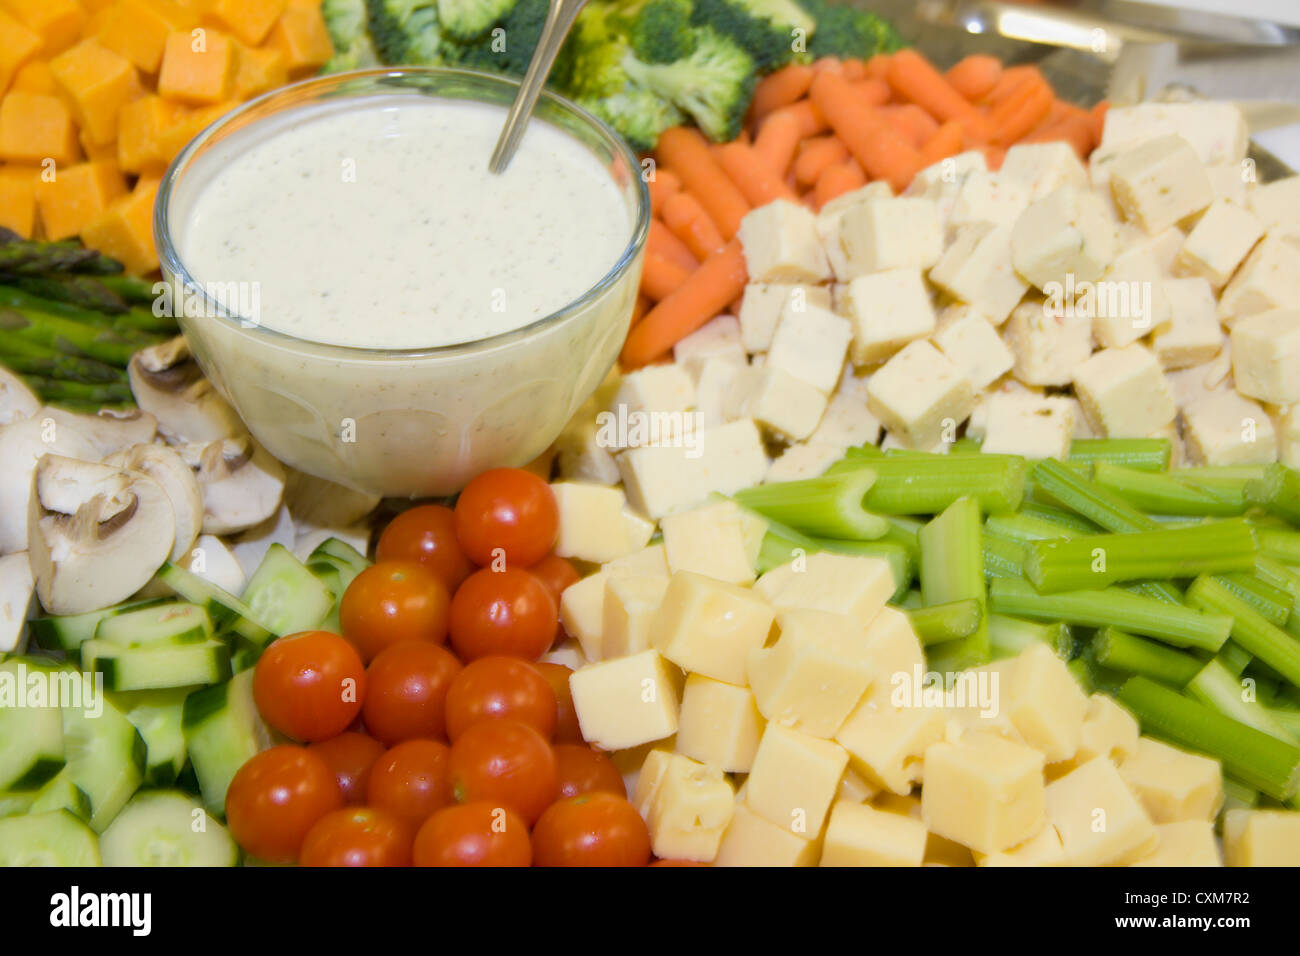 fresh cherry tomatoes, sliced mushrooms, cheese squares, carrots, celery, broccoli and ranch dressing on a party - Stock Image